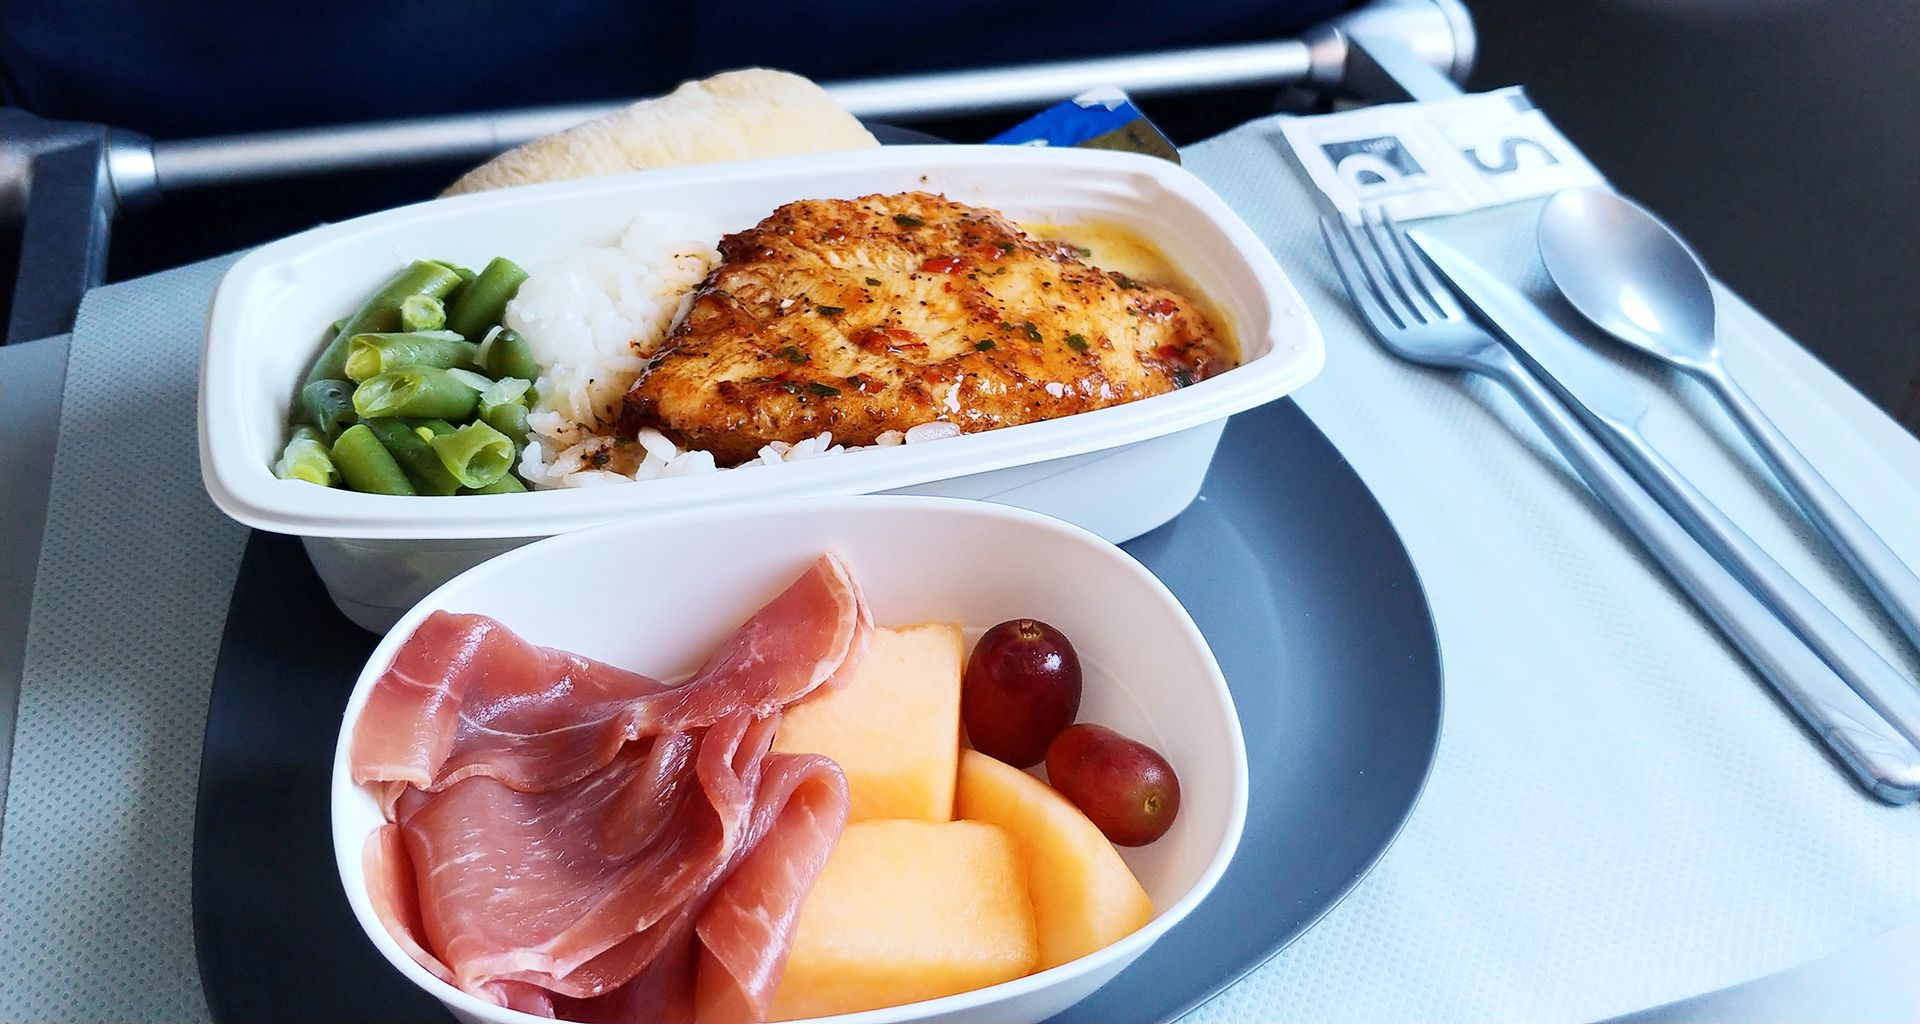 Check out the new inflight service on Delta Airlines